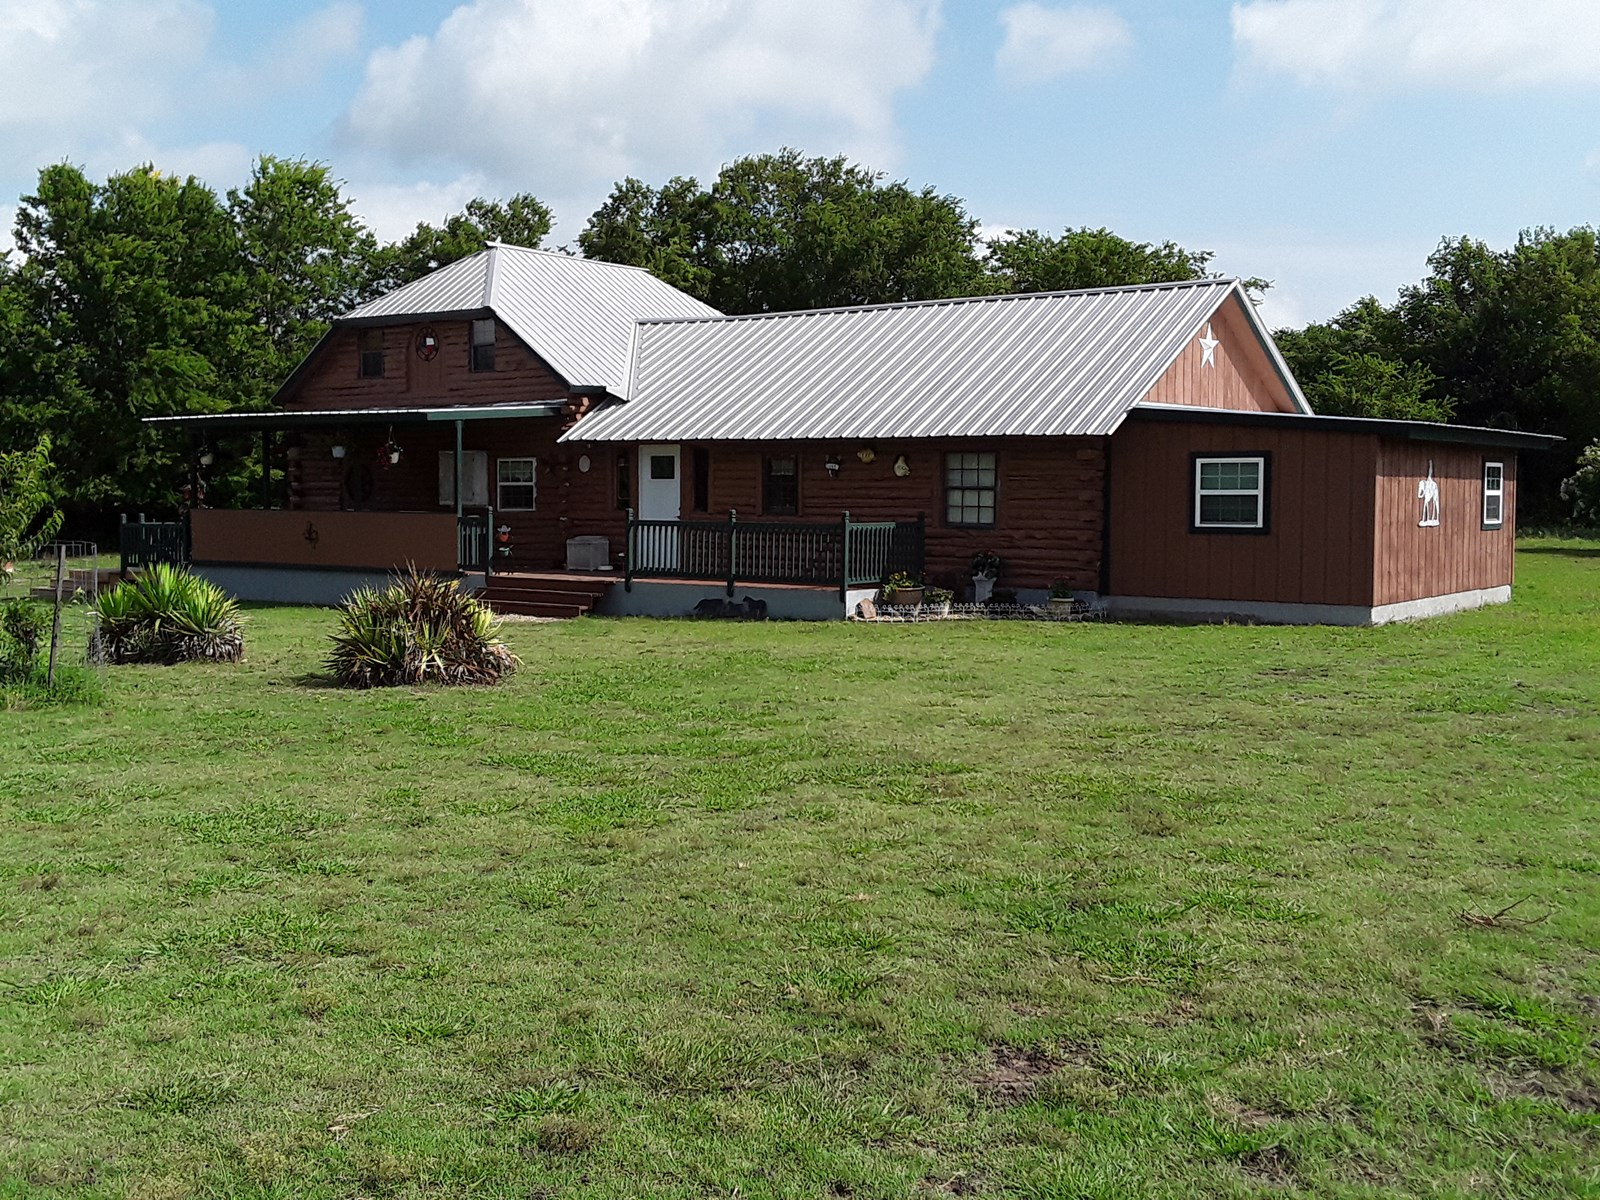 Country Log Home & Equine Property For Sale Wolfe City Texas